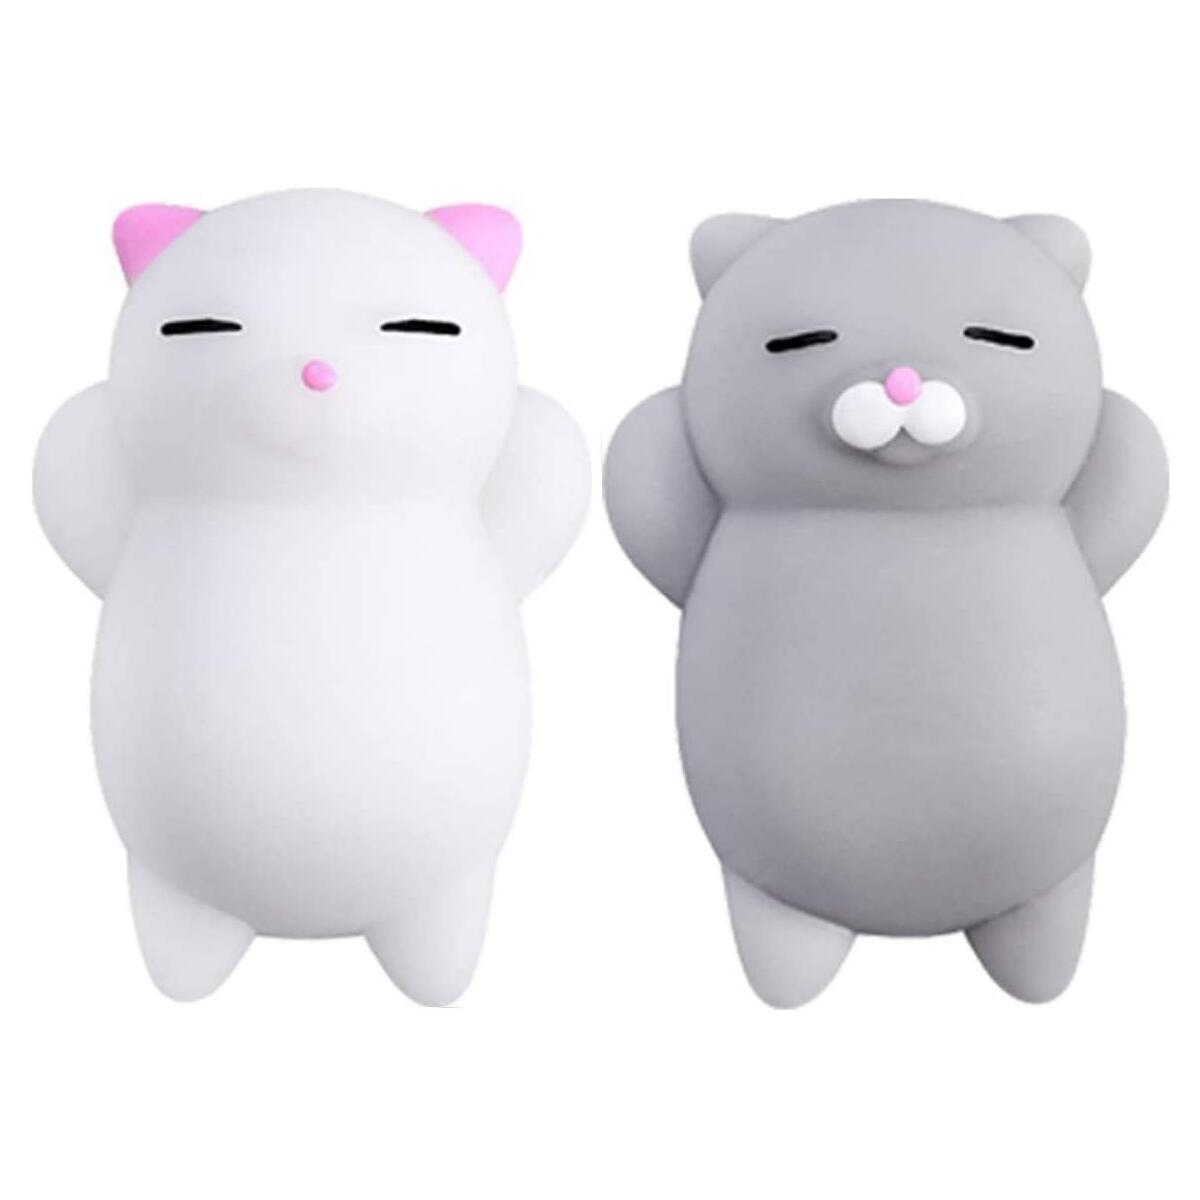 Squishy Cat 2 set by Nutty Toys - Premium Silicone Material - Amazing Stocking Stuffer & Best Christmas Gift 2020